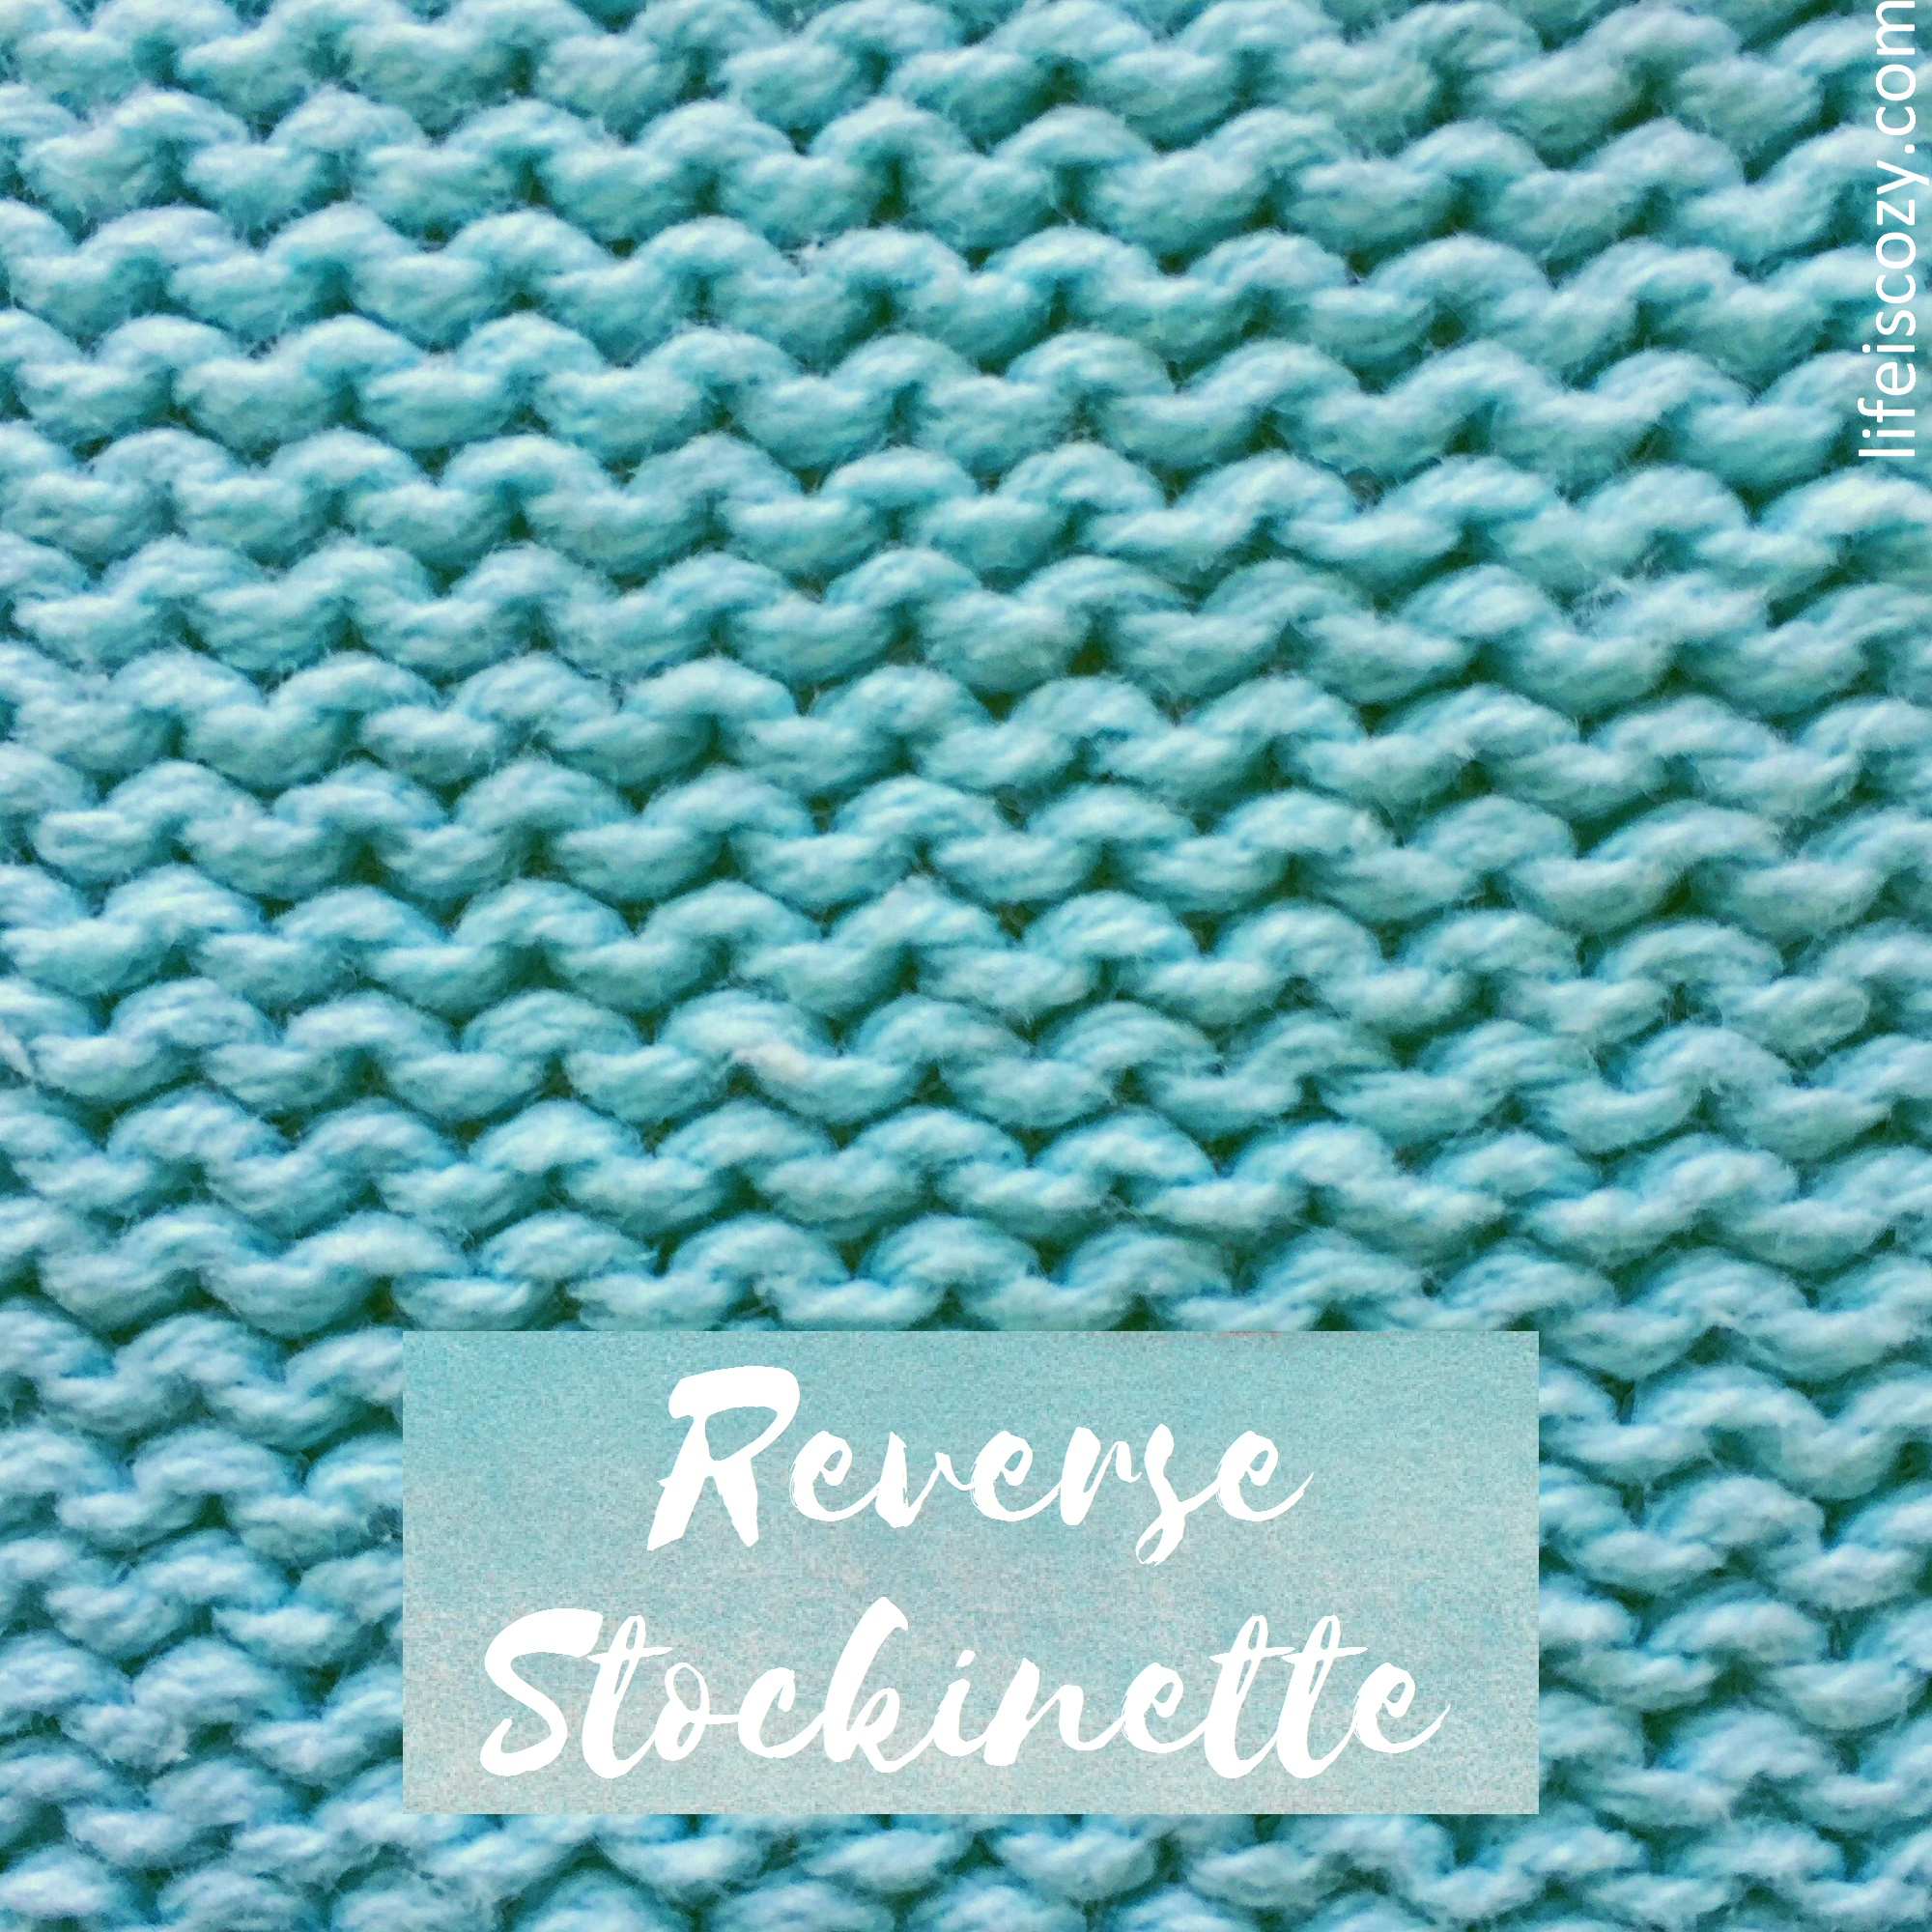 Reverse Stockinette Stitch How to knit